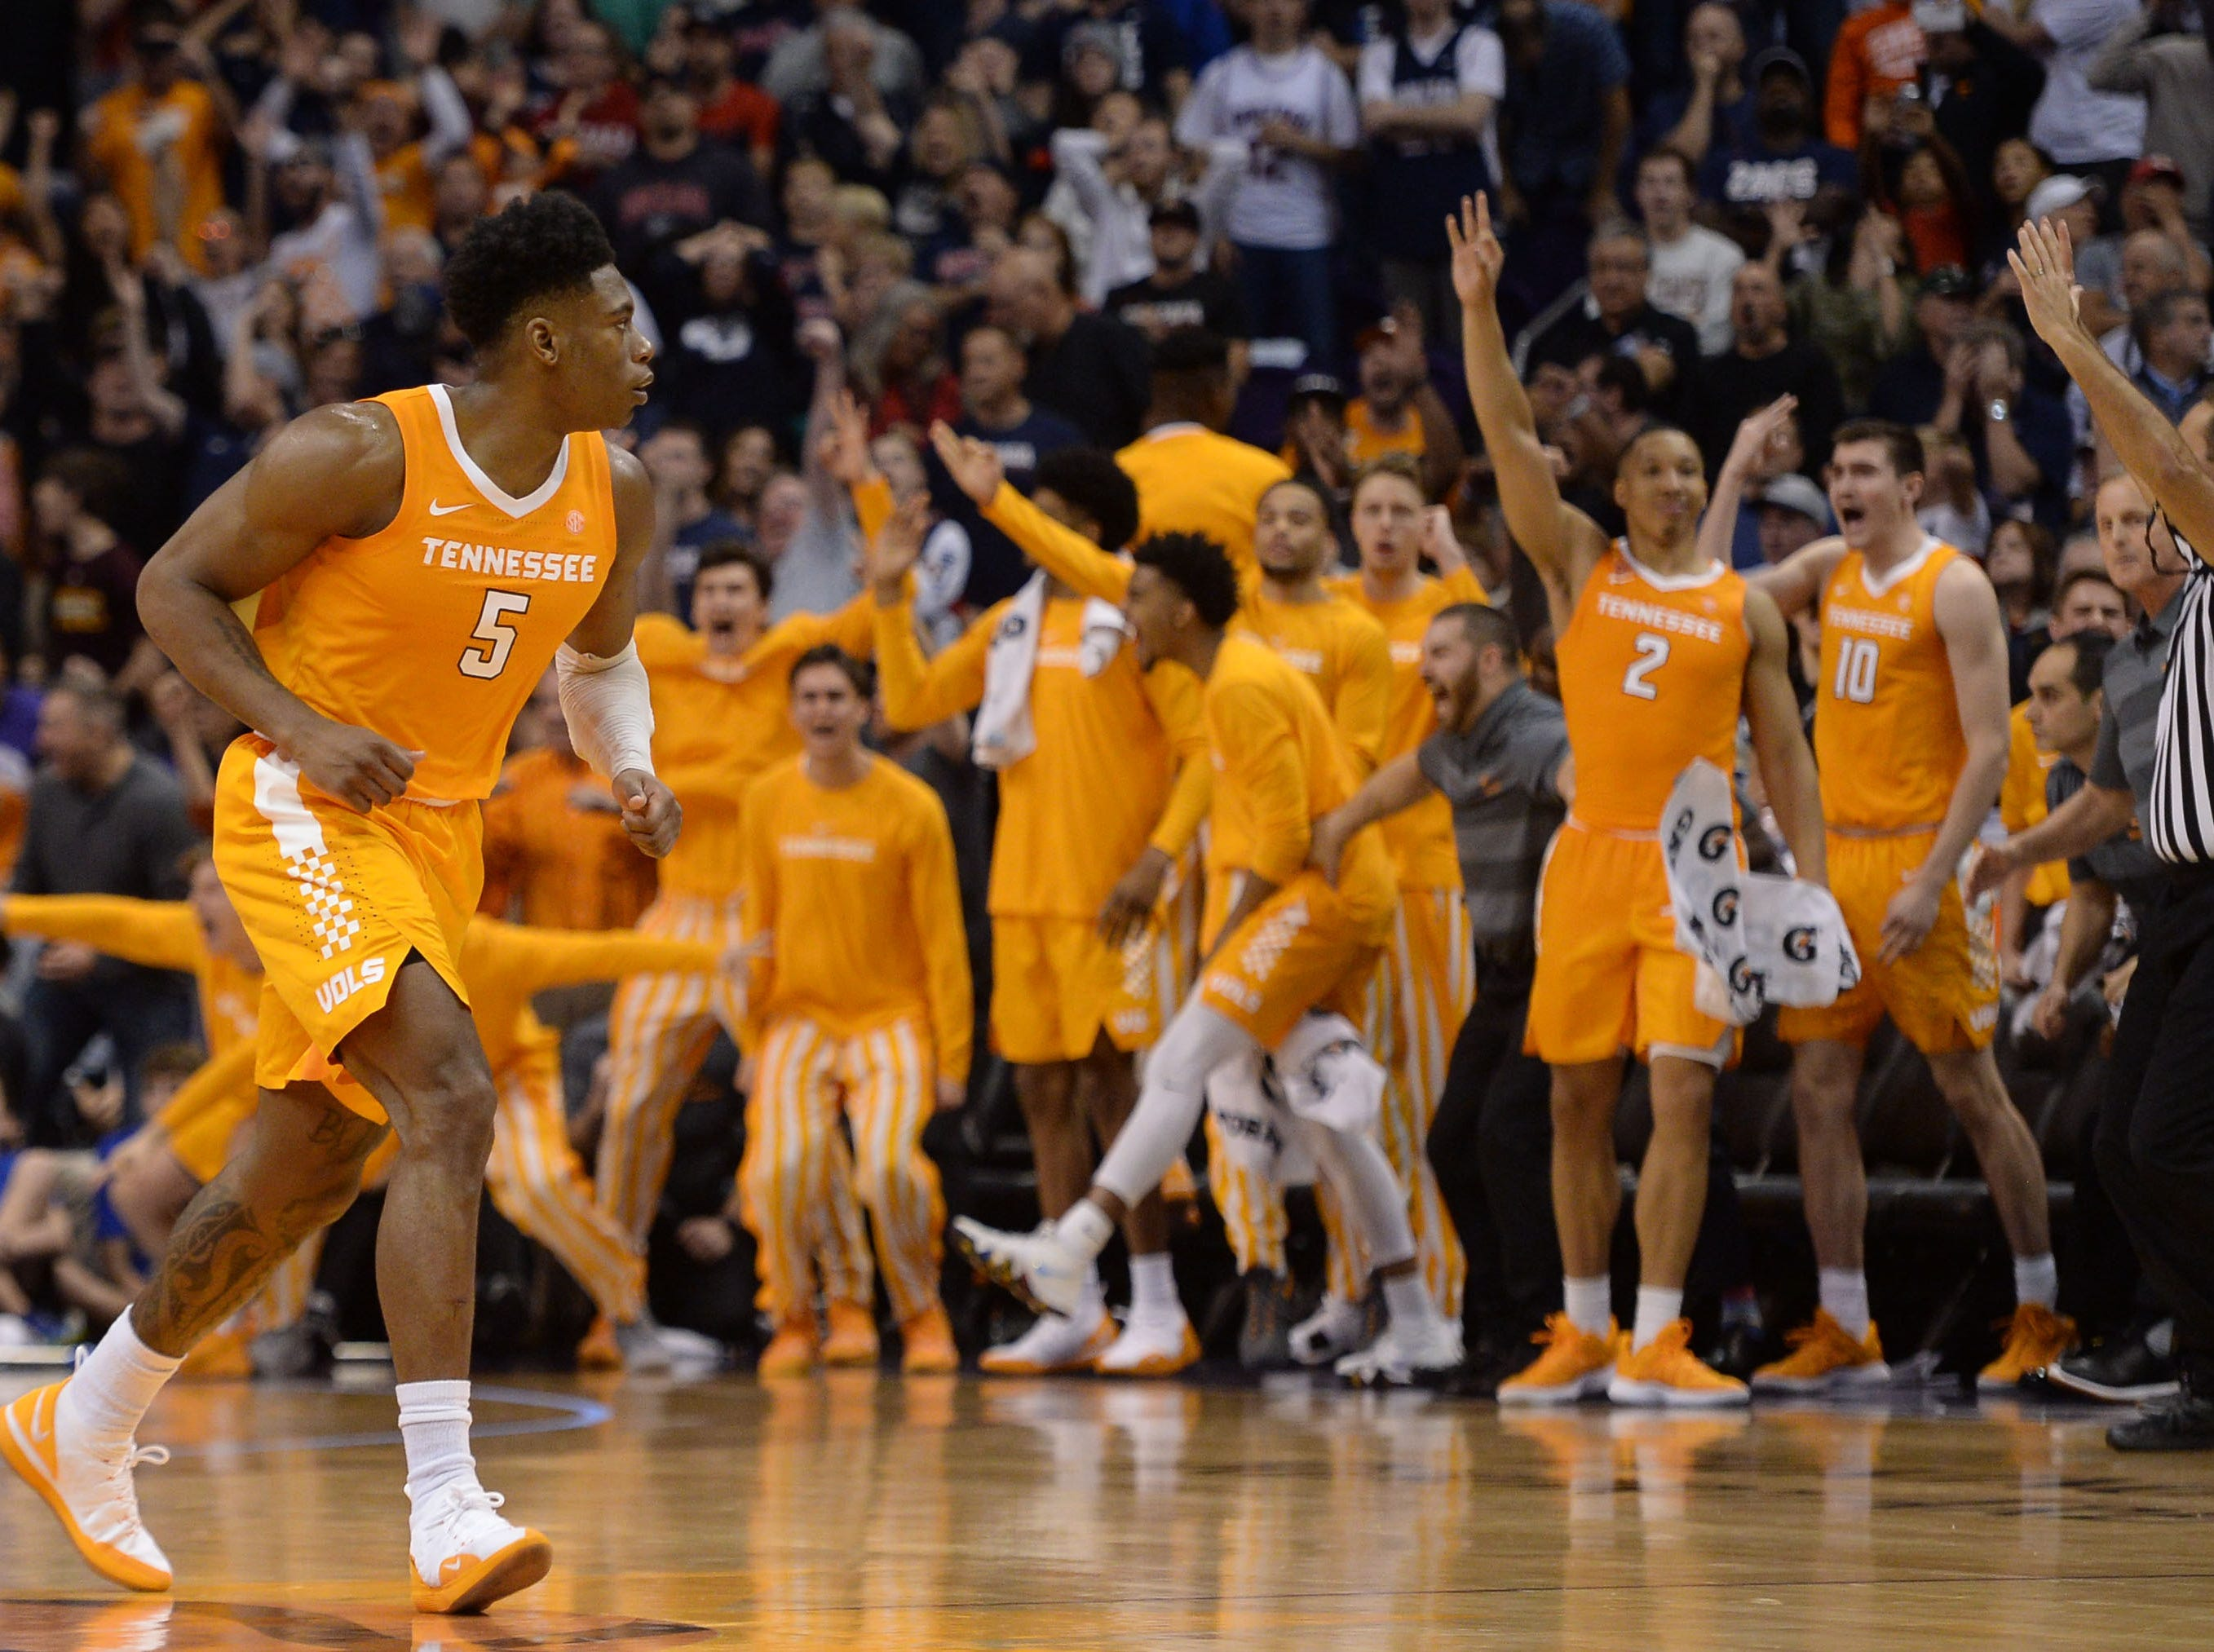 Dec 9, 2018; Phoenix, AZ, USA; Tennessee Volunteers guard Admiral Schofield (5) and the bench celebrate the go ahead three point basket against the Gonzaga Bulldogs during the second half at Talking Stick Resort Arena.